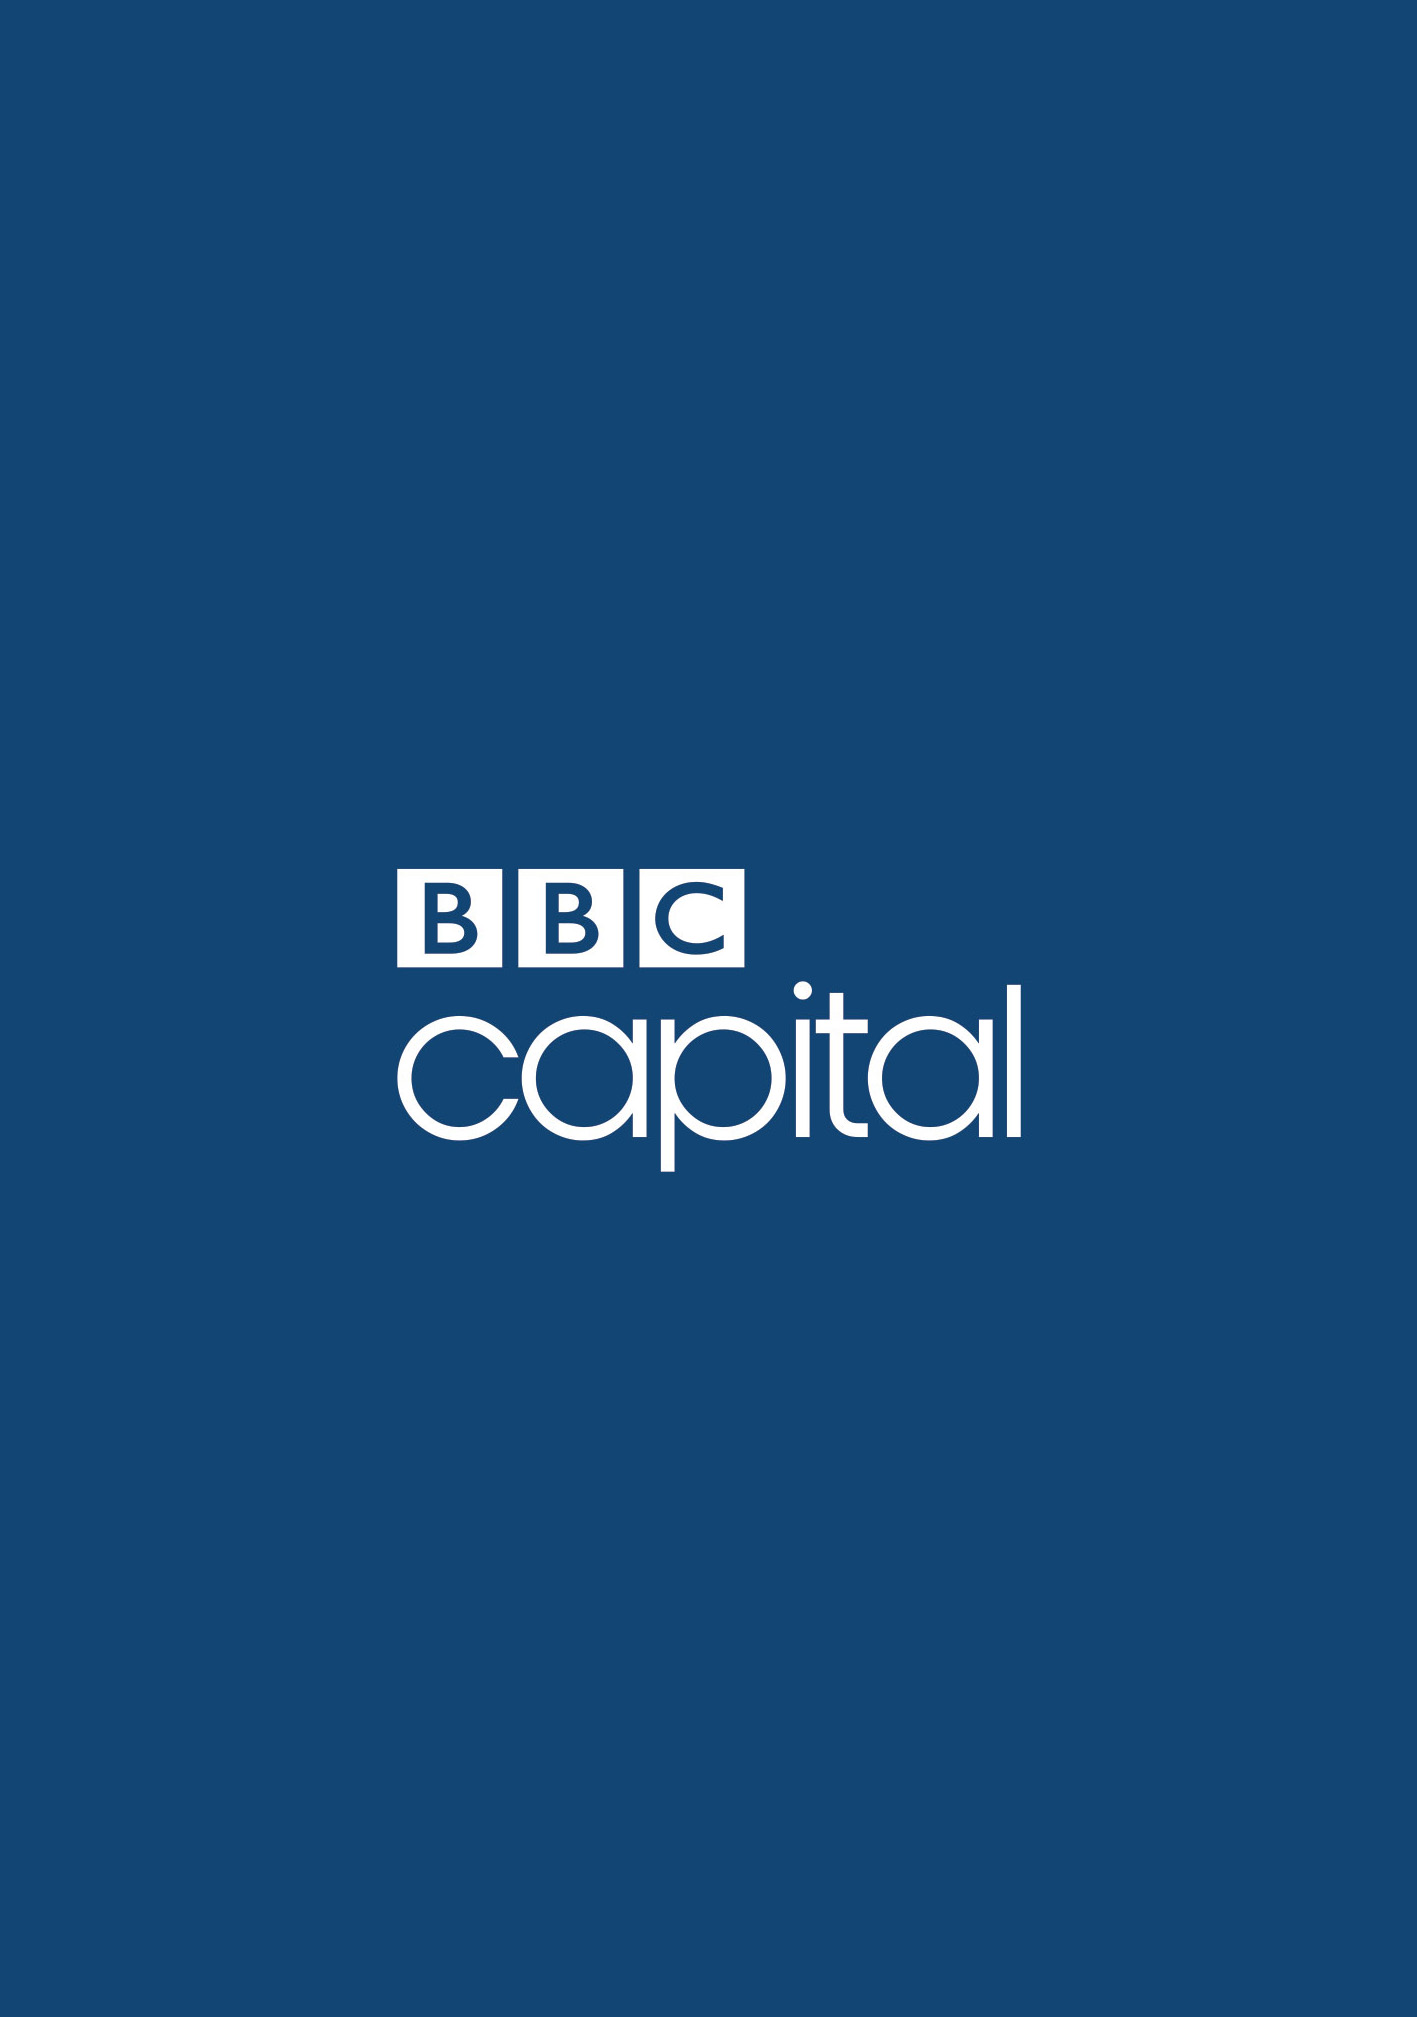 Avatar - BBC Capital